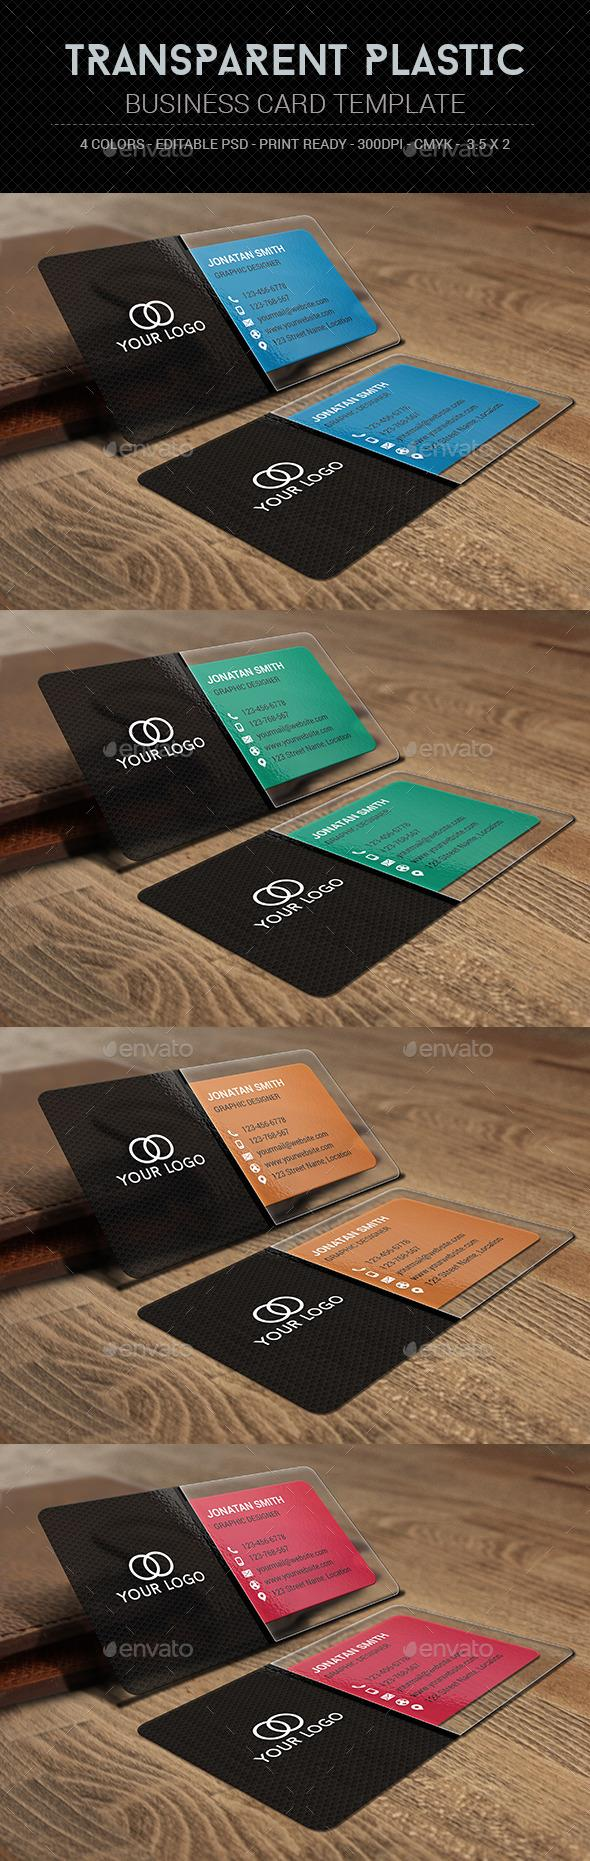 Transparent Plastic Business Card Template | Card templates and ...